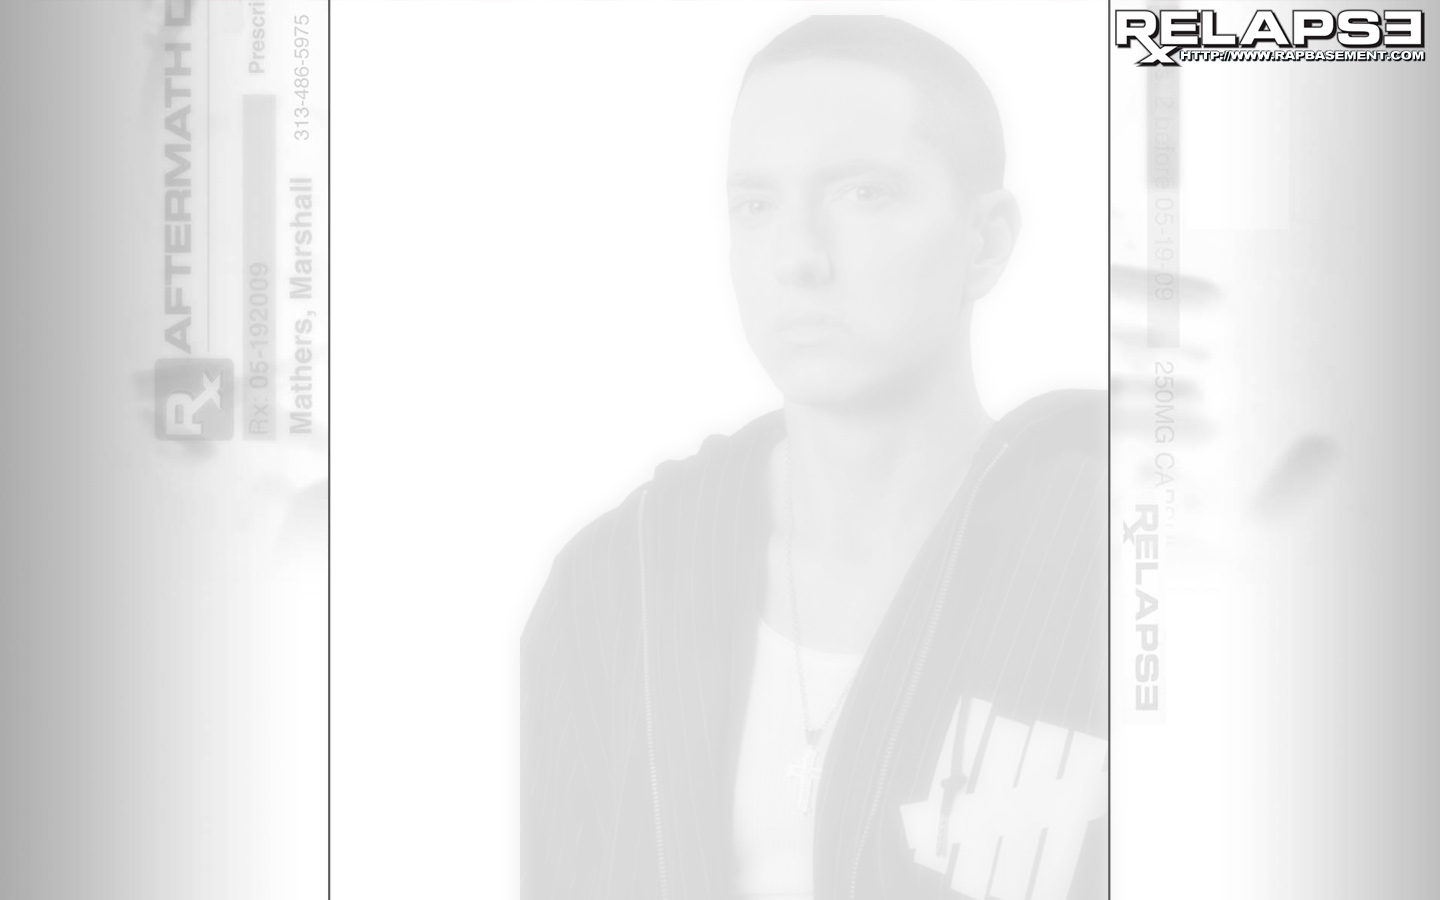 eminem relapse wallpaper 06